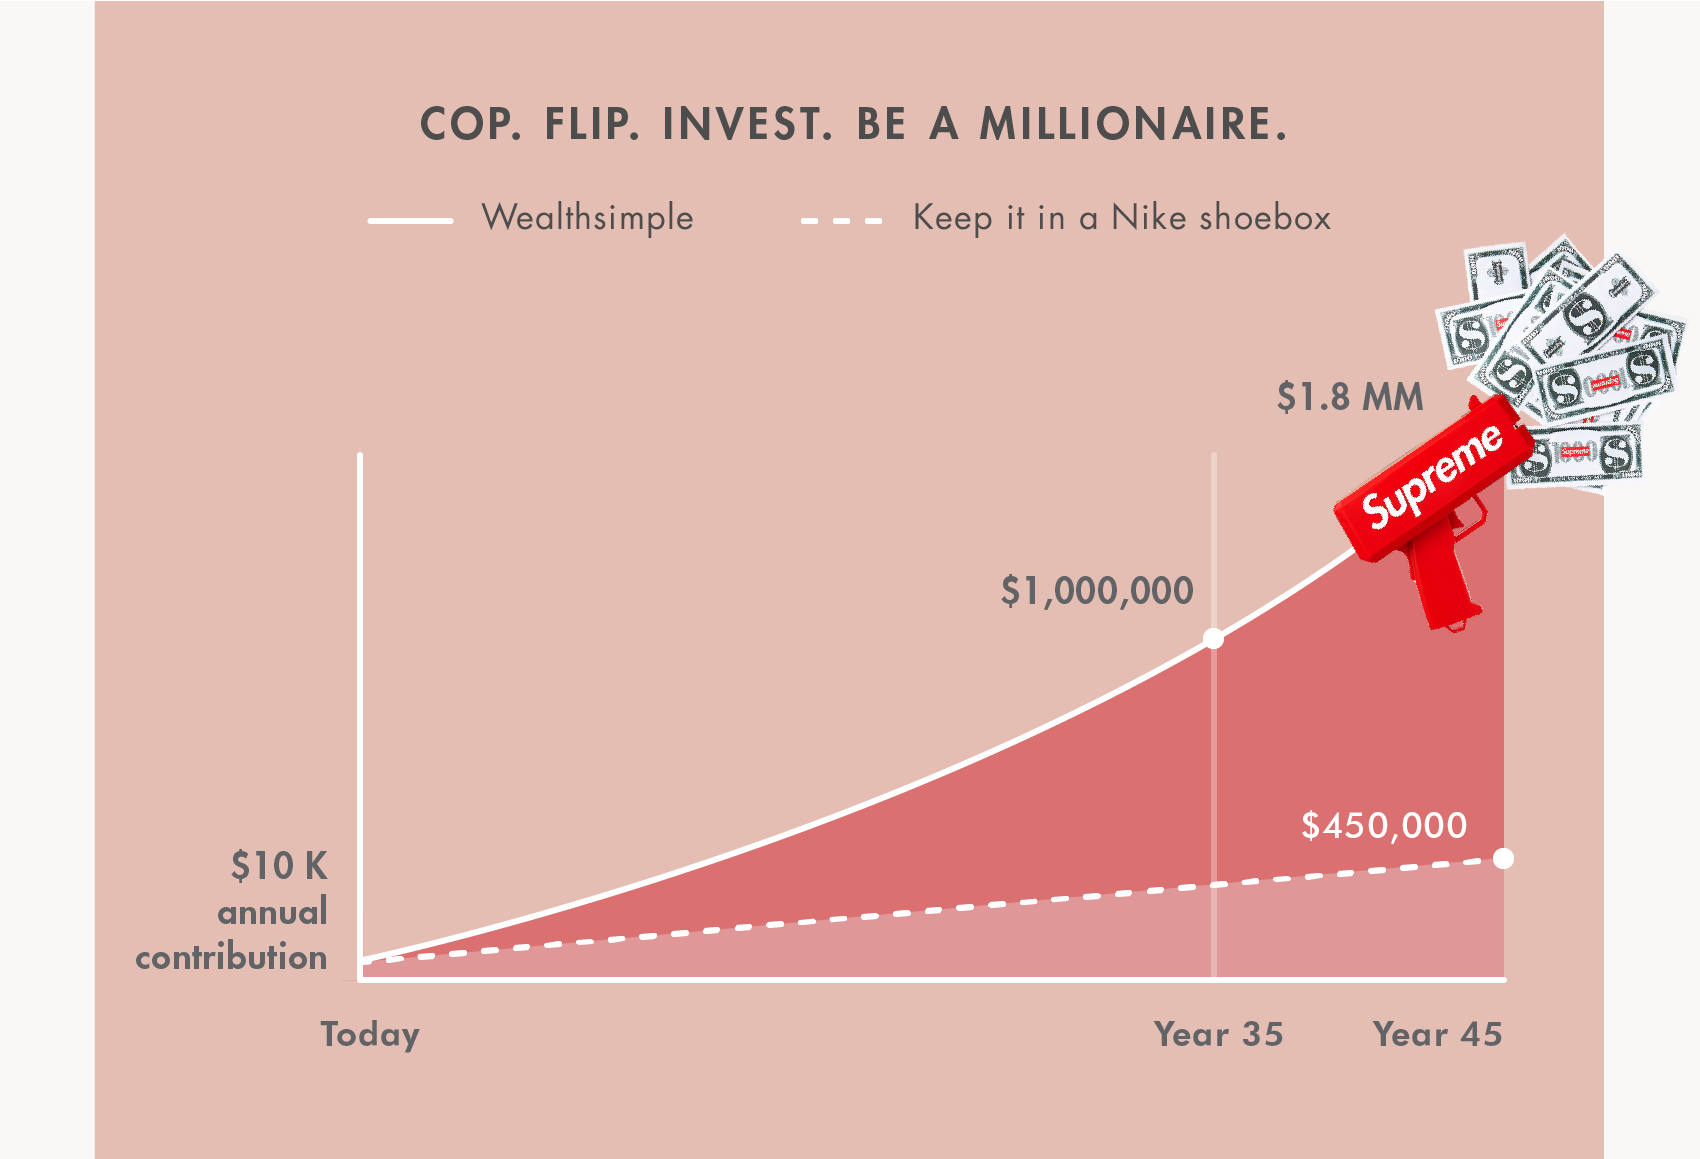 Graph showing how investing in Supreme clothing could make you a millionaire